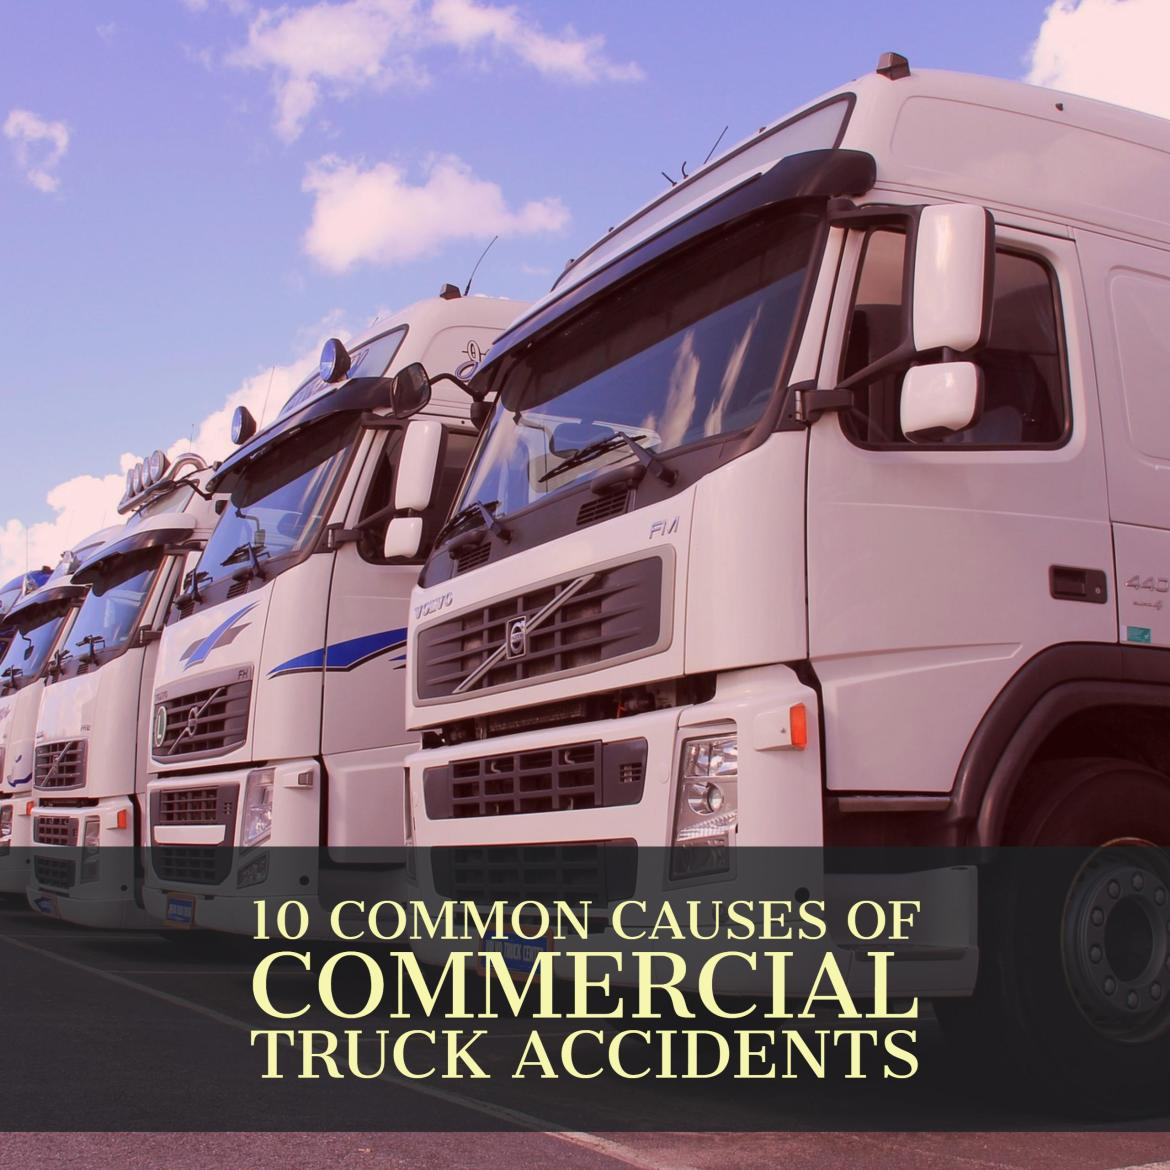 Texas Big Truck Wreck Accident Lawyers Explains Trucking Company Lawsuit Justicenewsflash Com